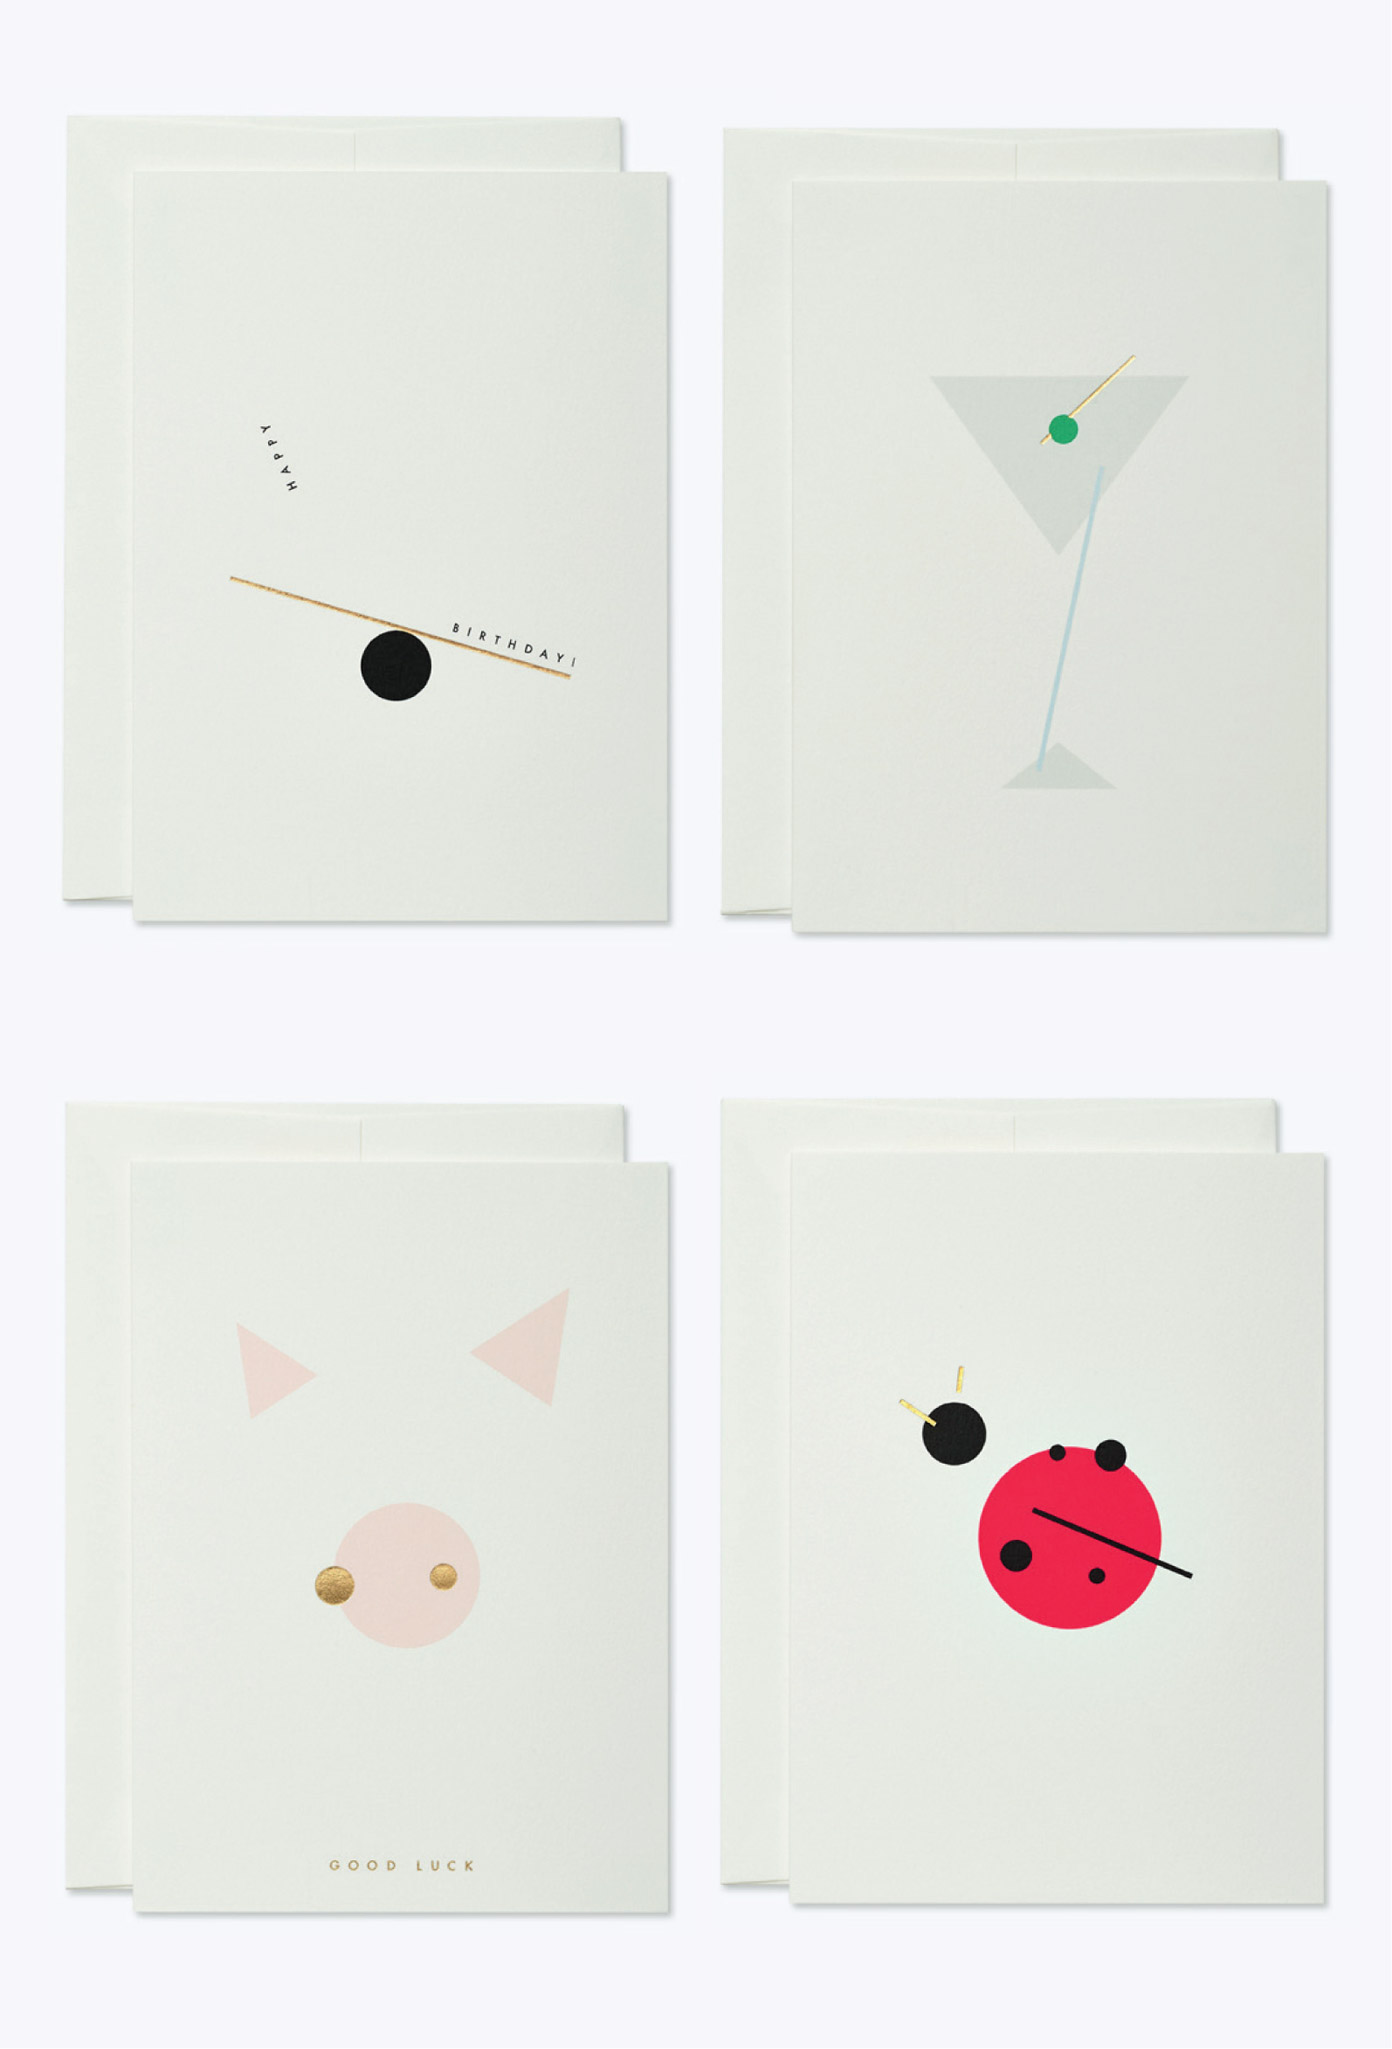 Minimalistic greeting cards by thie studios.